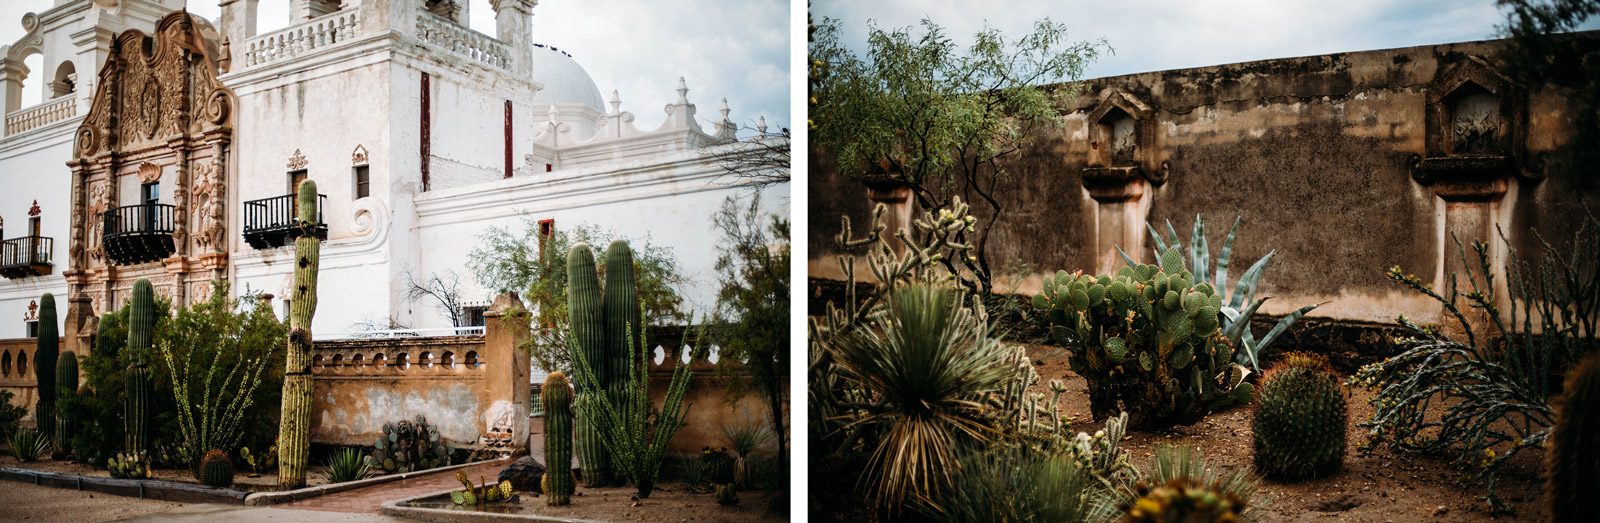 city guide Tucson mission san xavier del bac